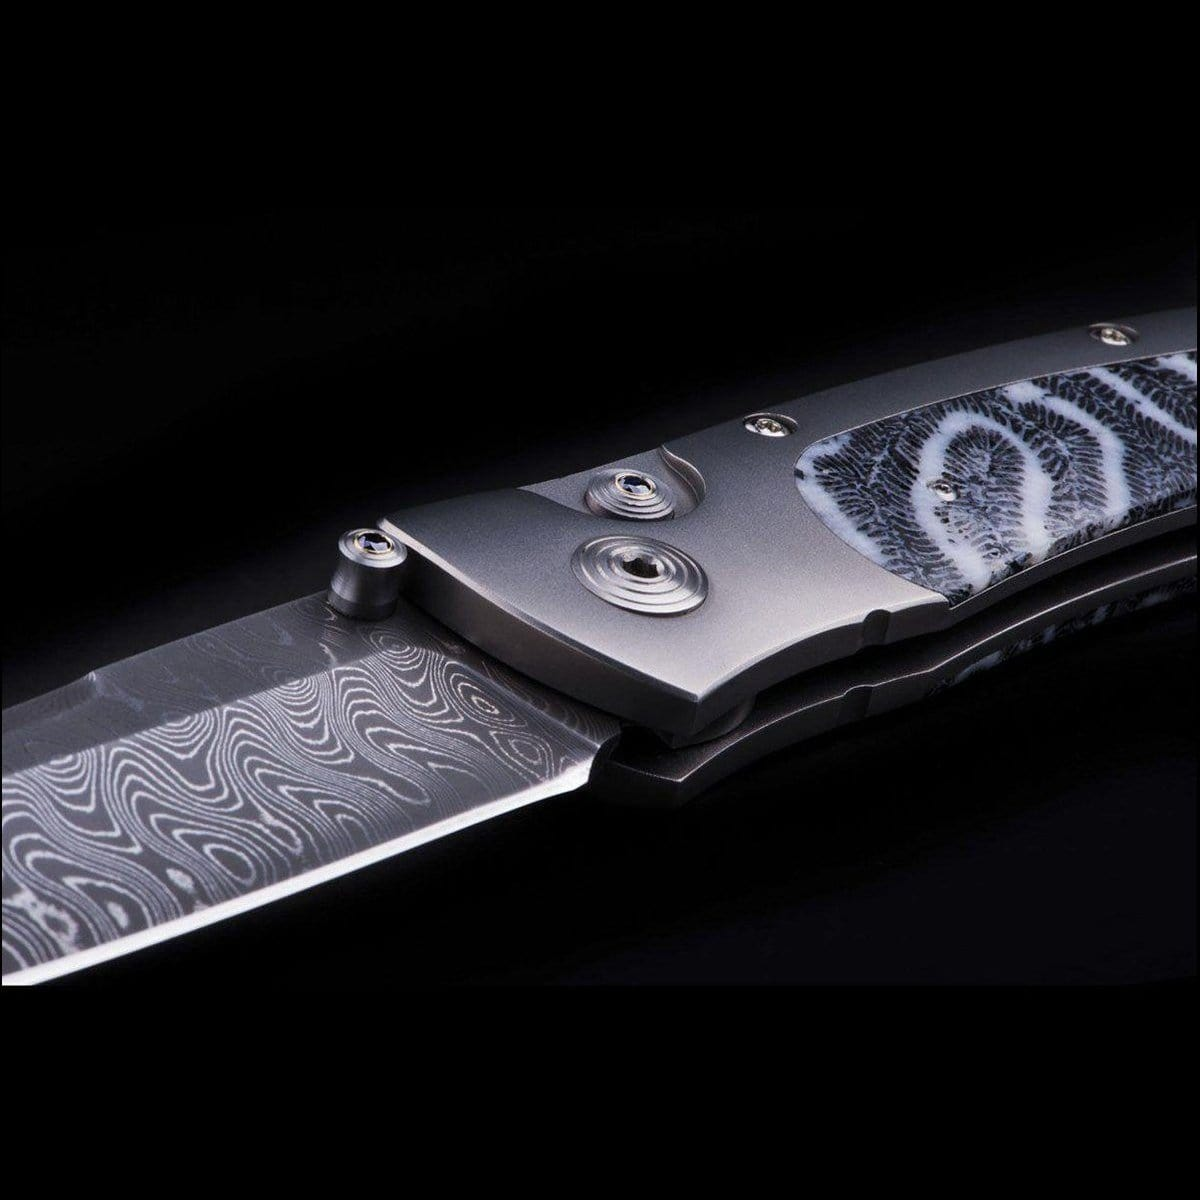 Rogue Marlin Limited Edition Knife - C15 MARLIN - William Henry